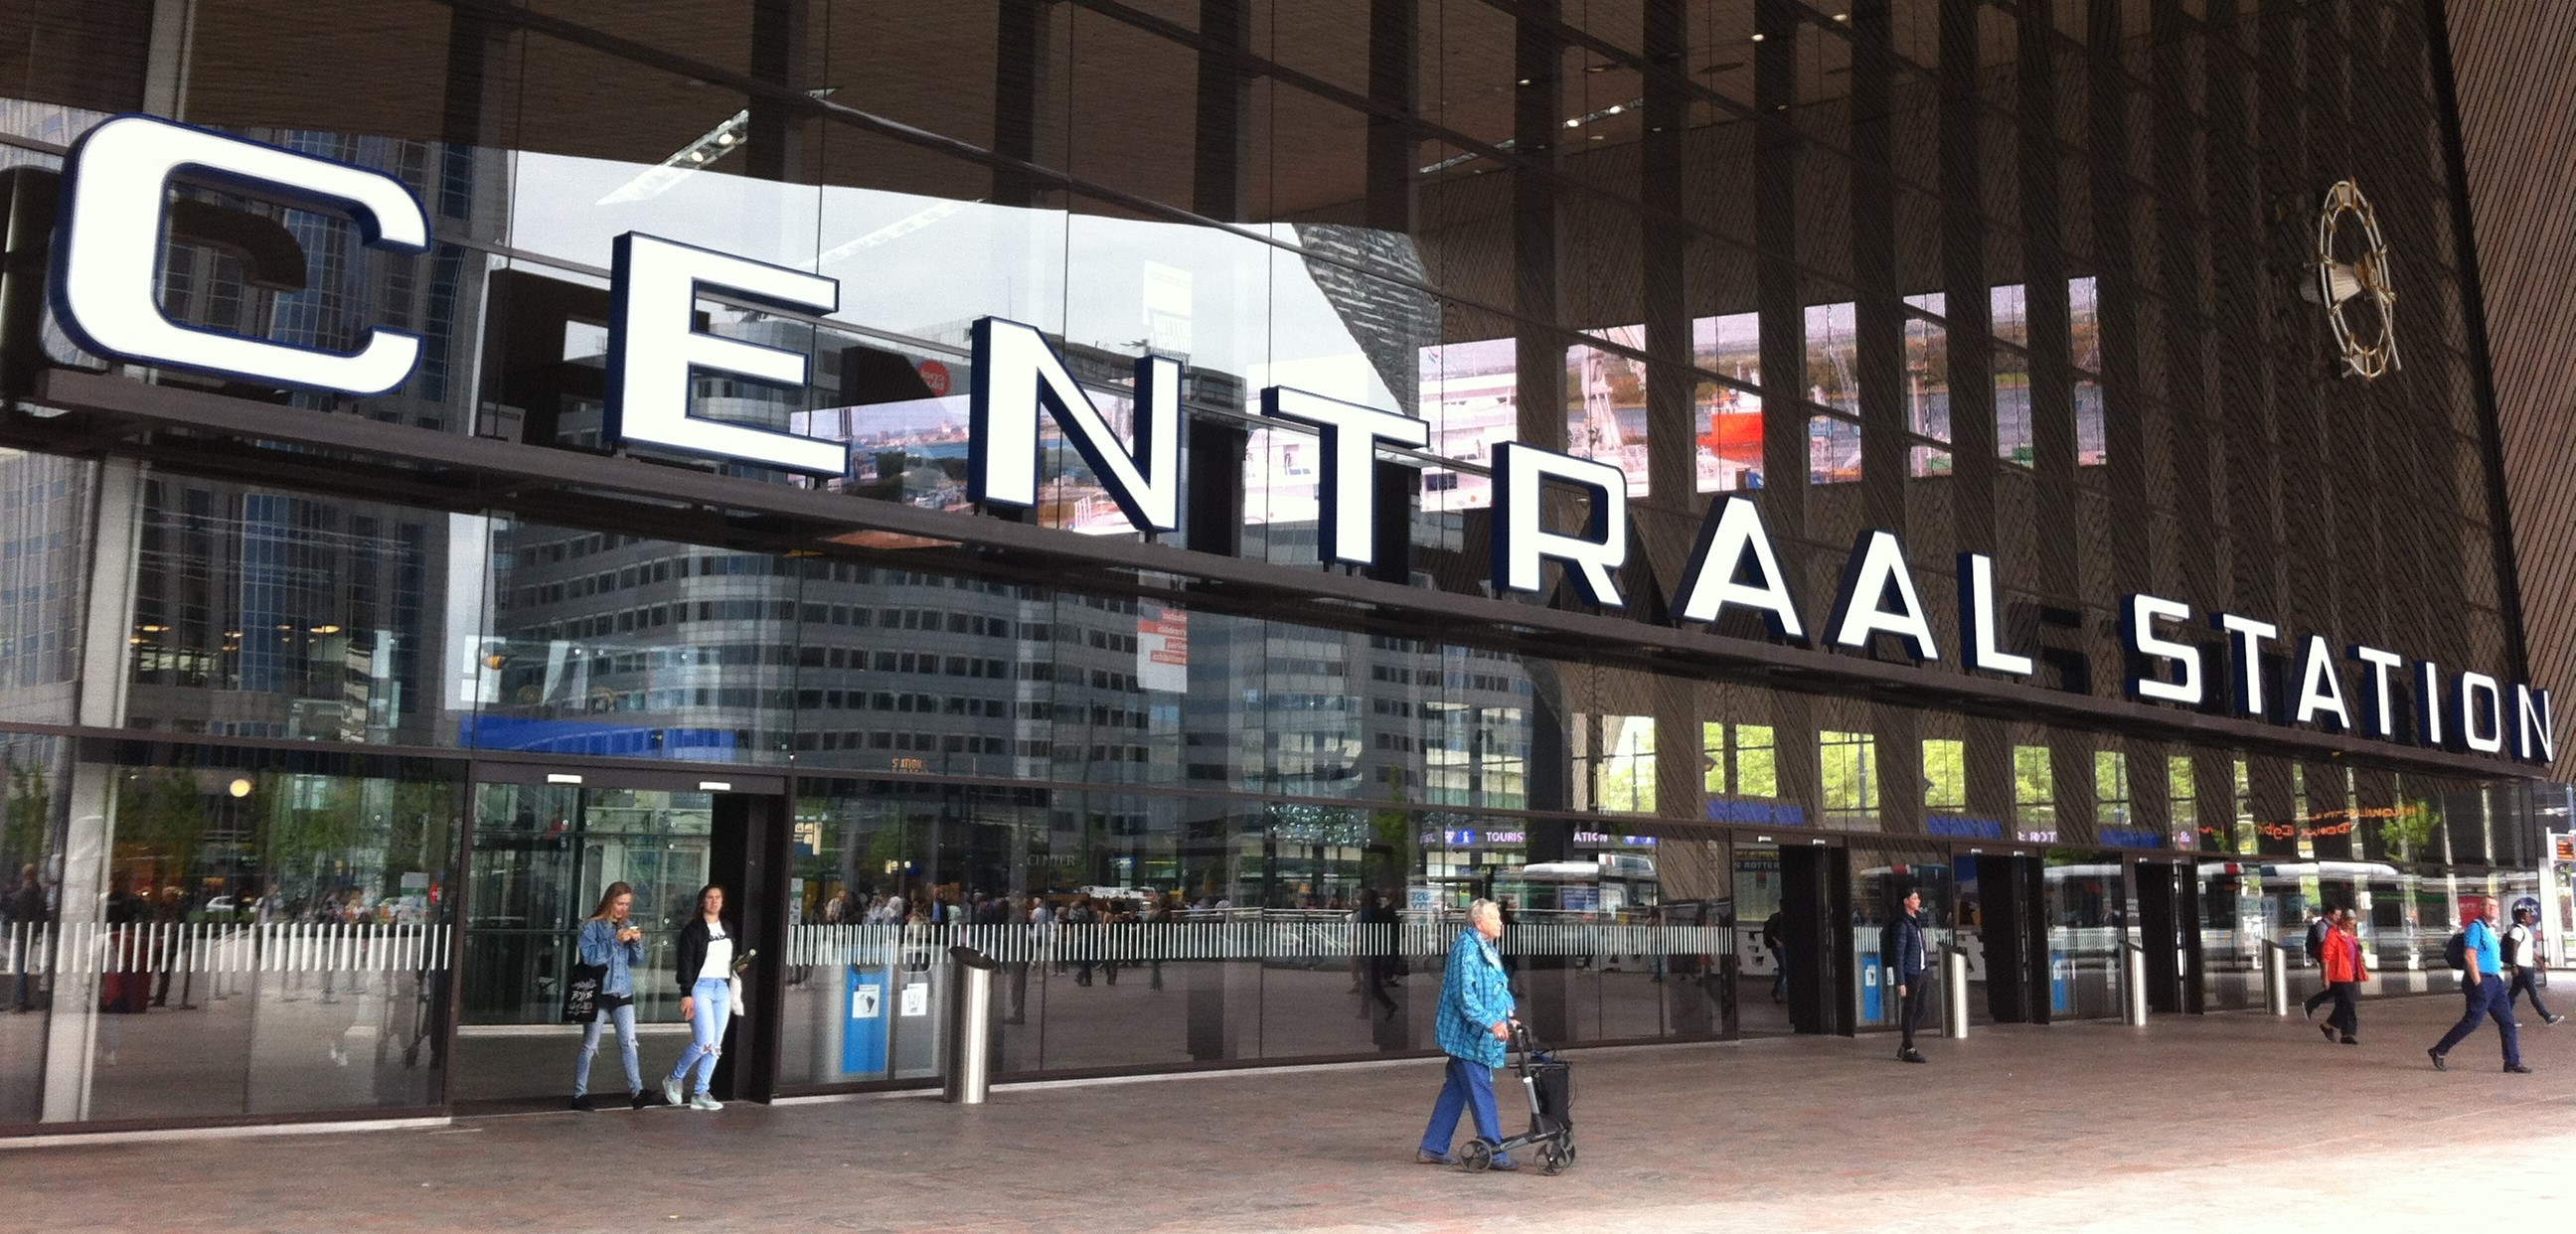 Rotterdam Centraal Station voorkant